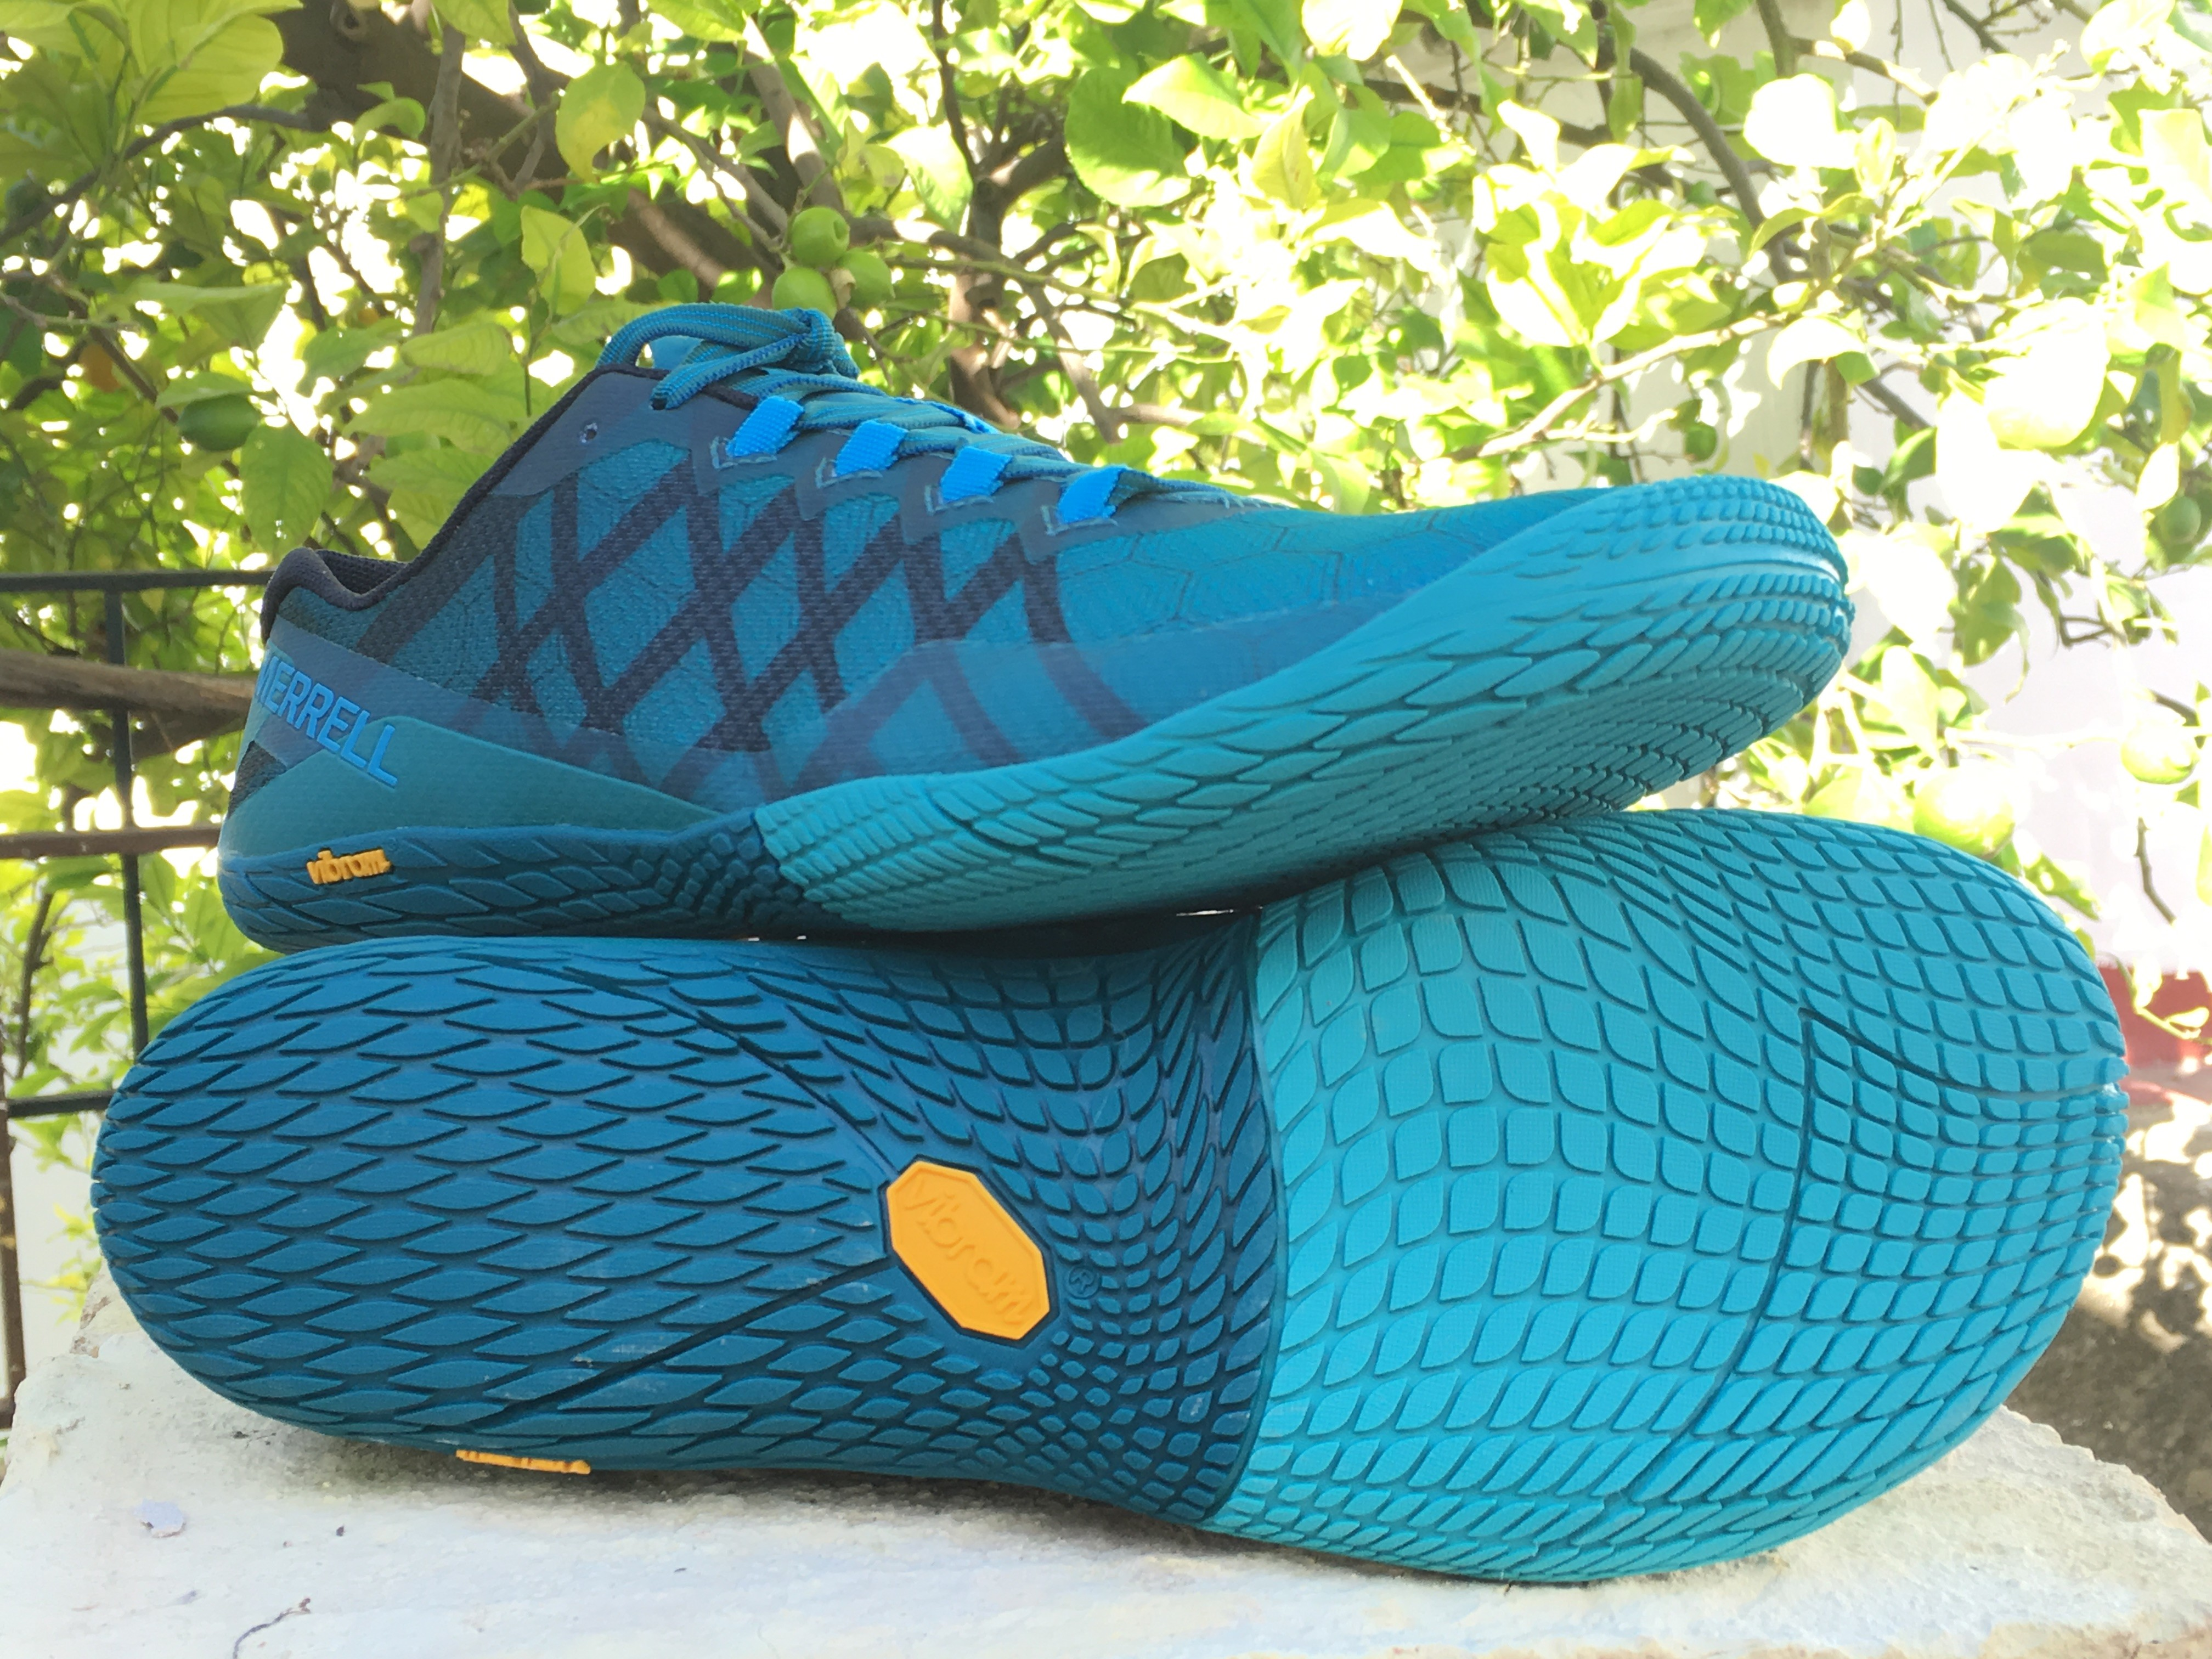 new product a81c5 cfc65 The new Vibram sole, with the TC-5Plus compound, retains the design with  the small polygonal studs, which allow running on both smooth surfaces and  compact ...